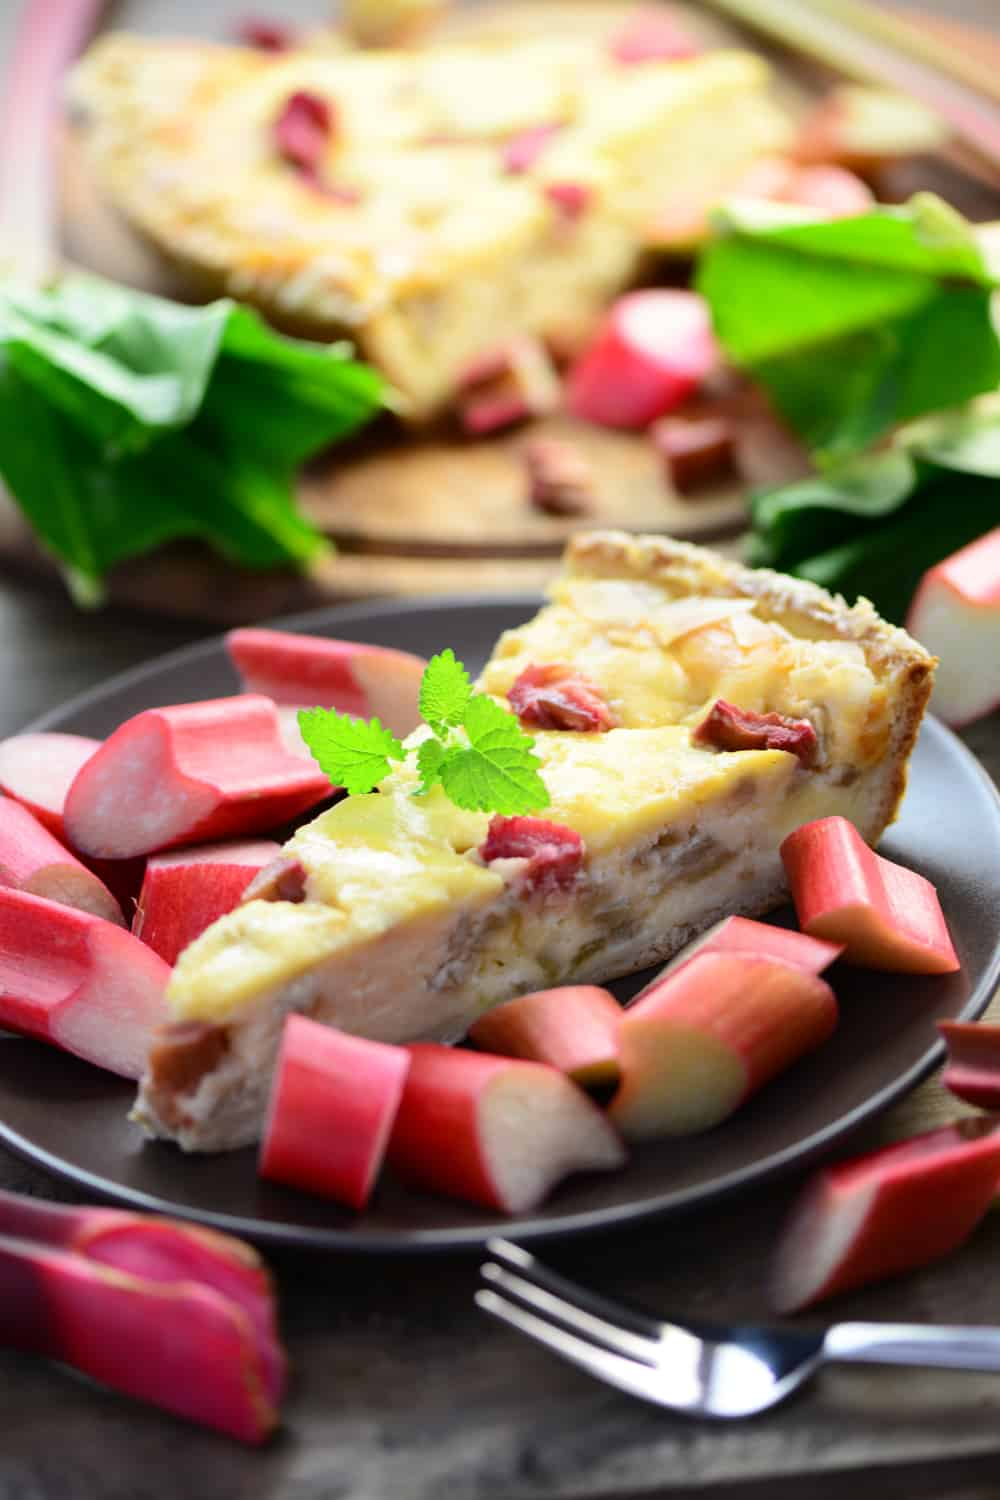 The Risk of Consuming Expired Rhubarb